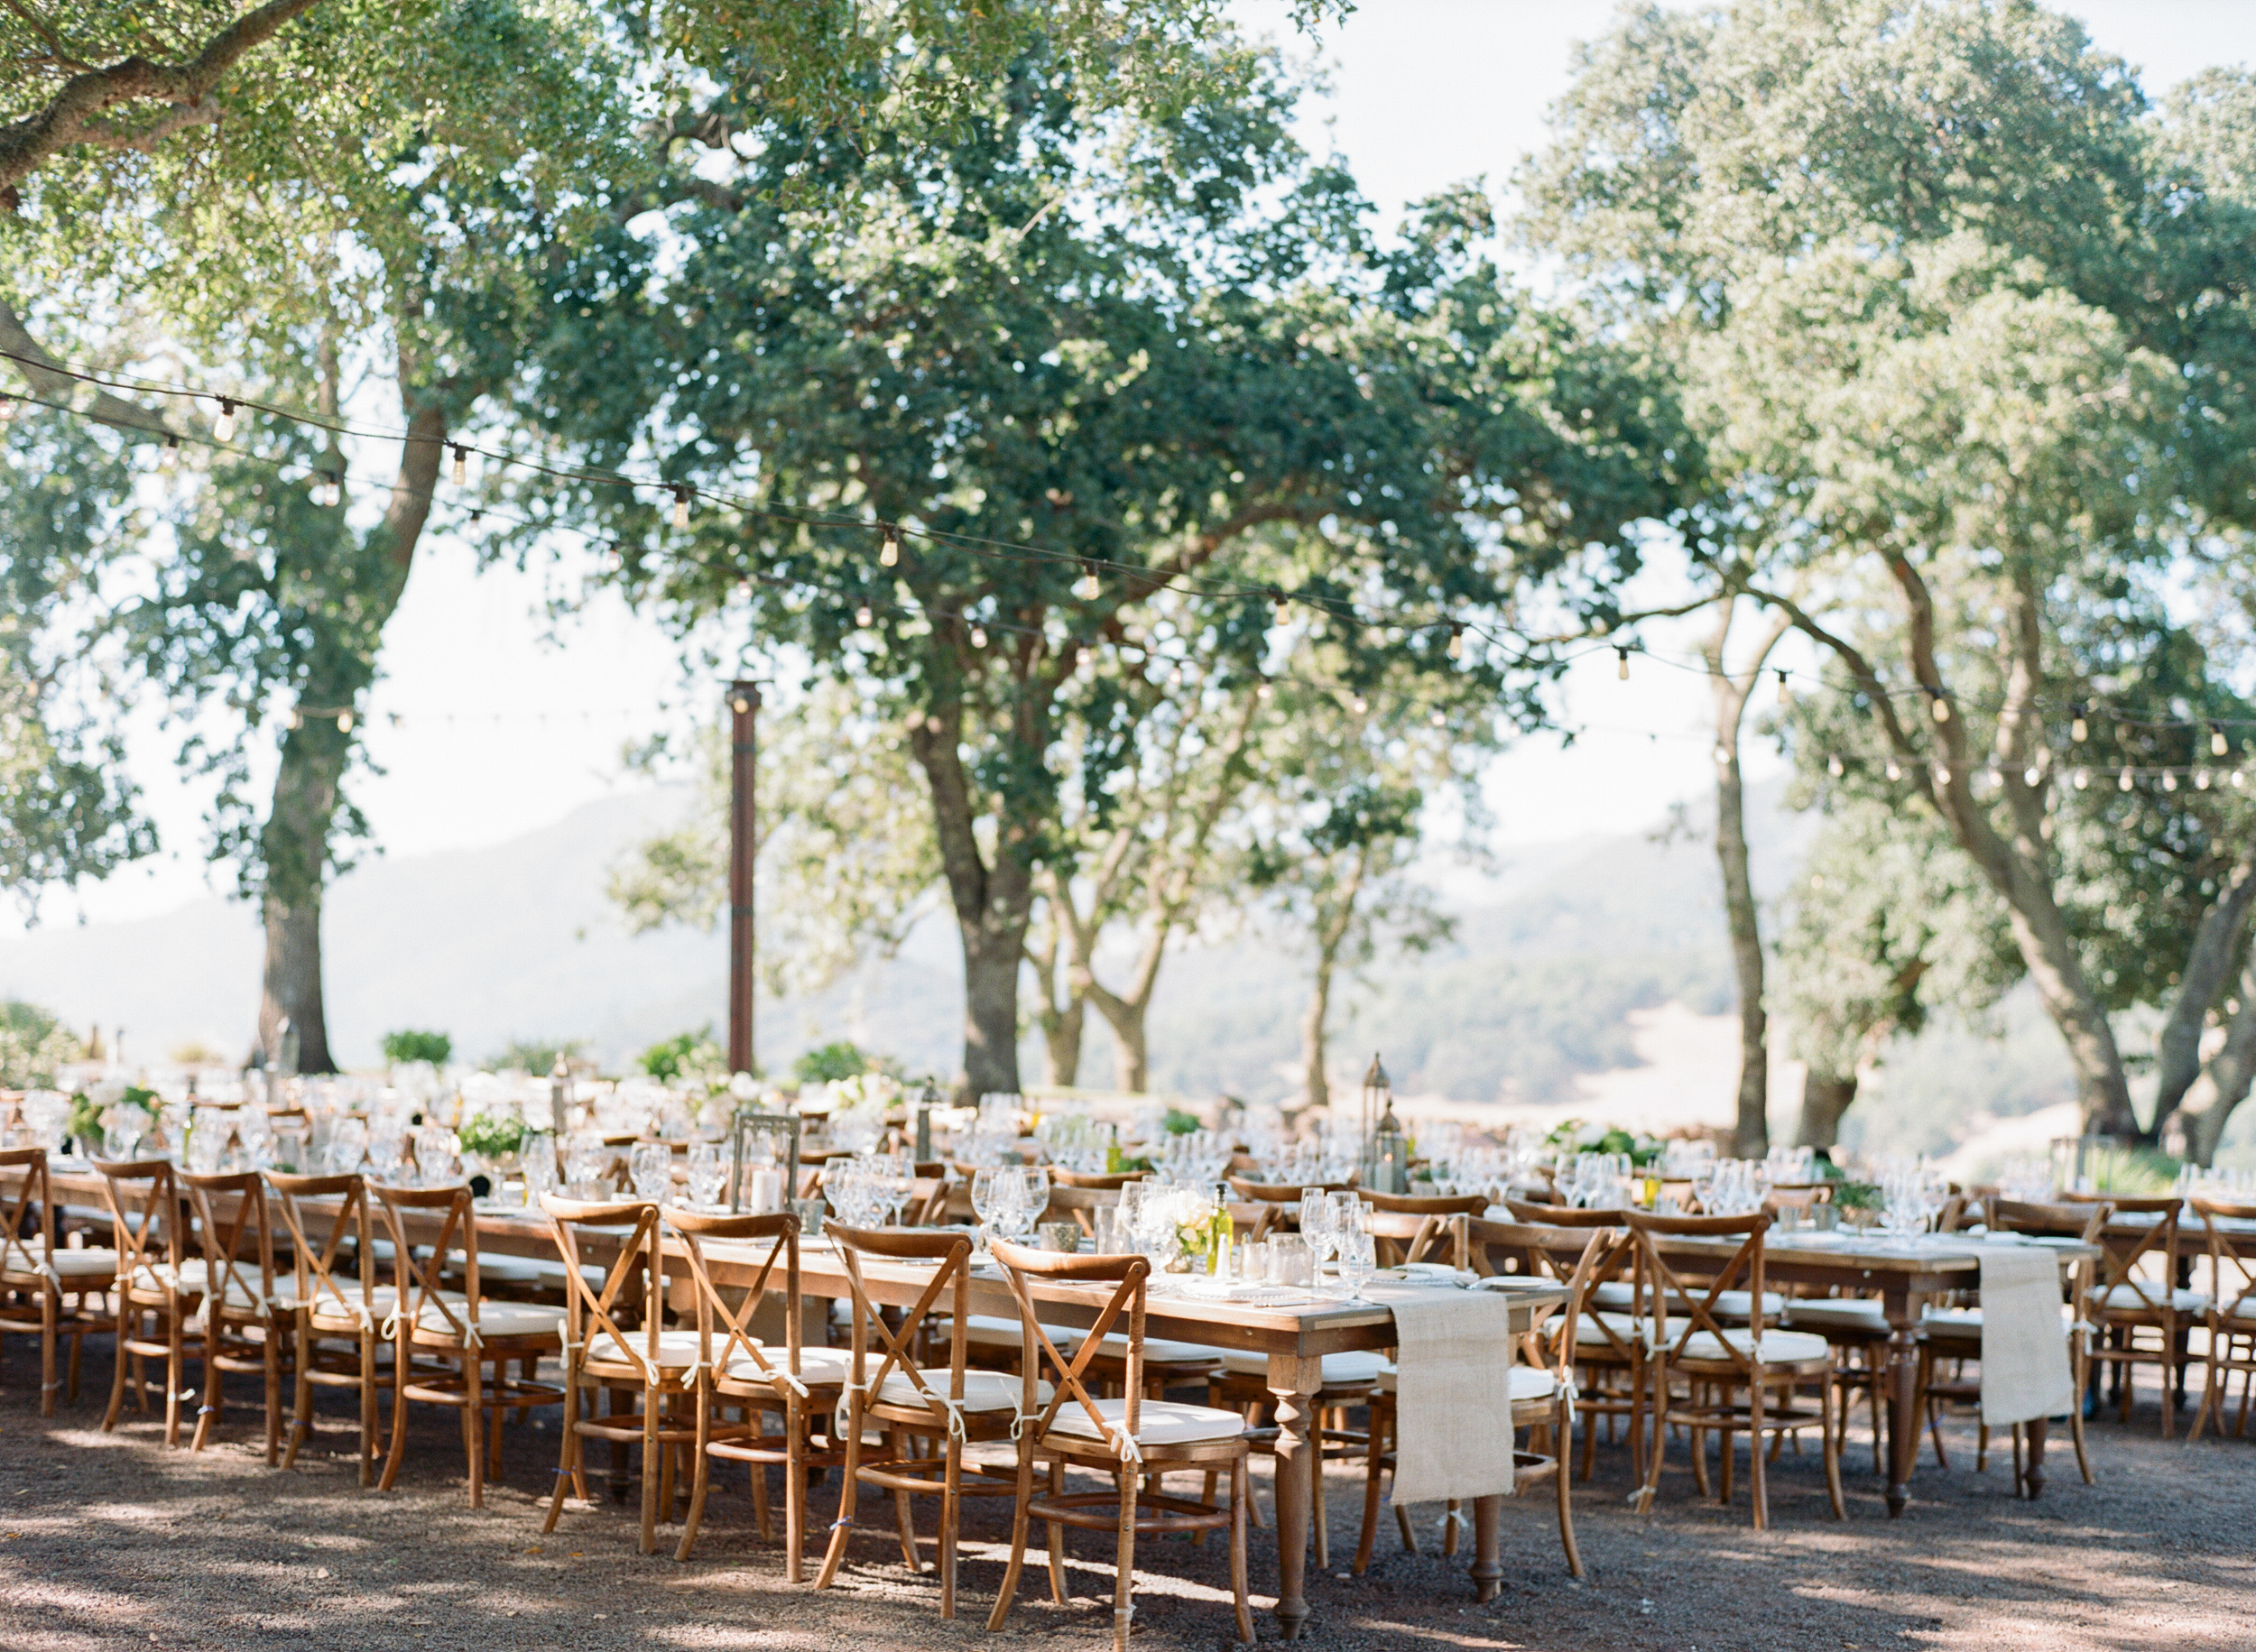 Sylvie-Gil-film-destination-photography-Kunde-winery-Napa-Valley-elegant-shabby-chic-long-wooden-tables-string-lights